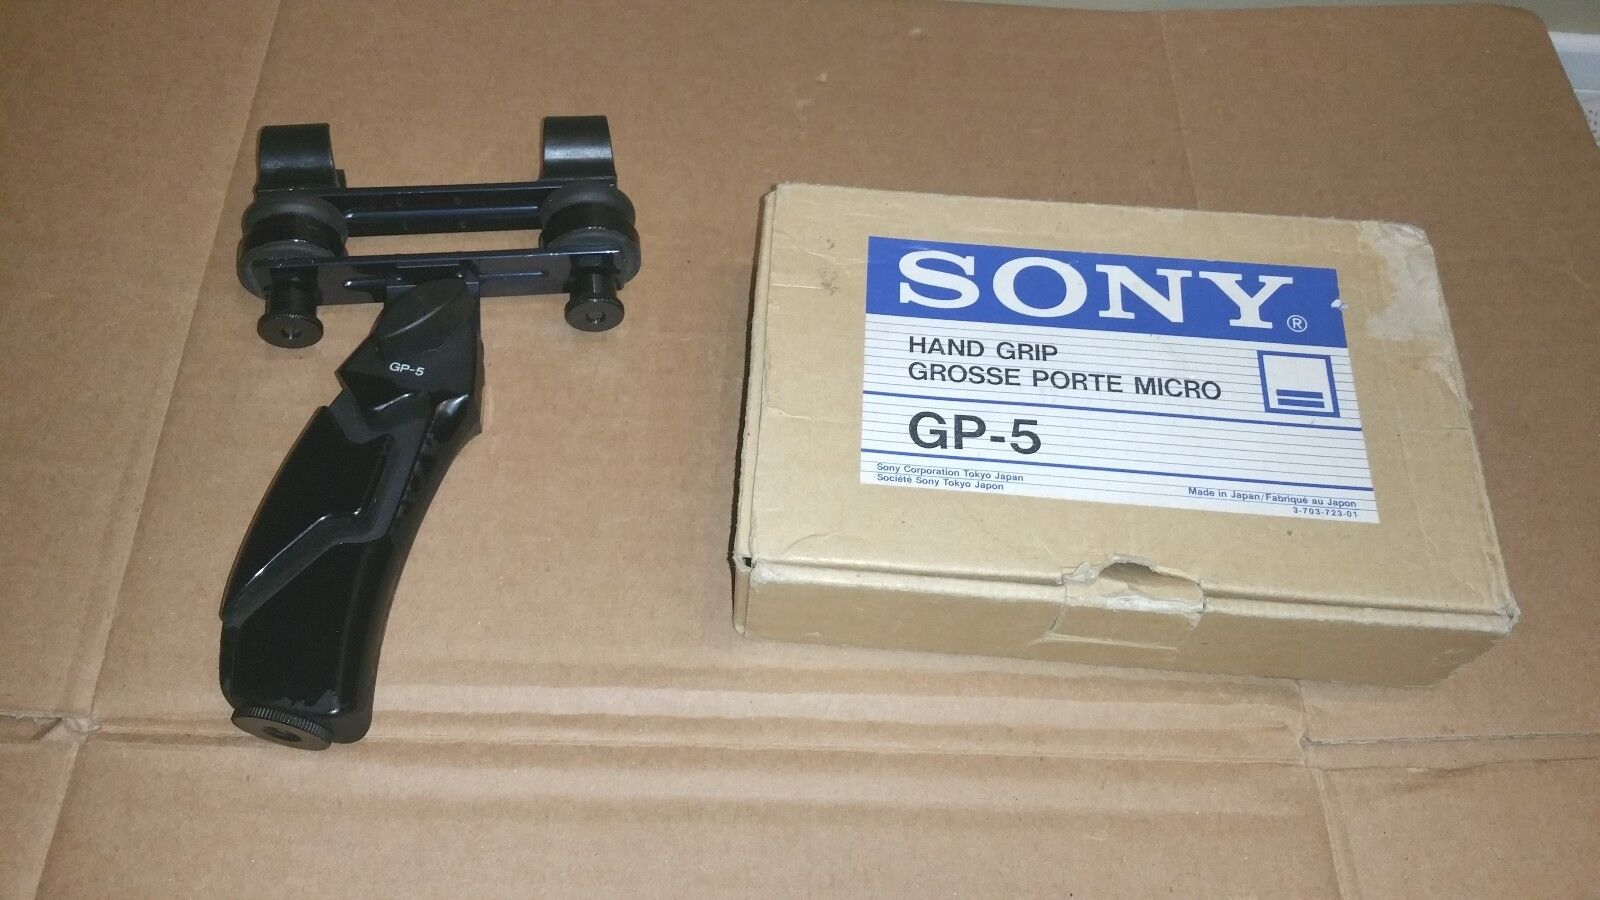 Sony GP-5 hand grip for microphone - pistol style holder - 24mm diameter